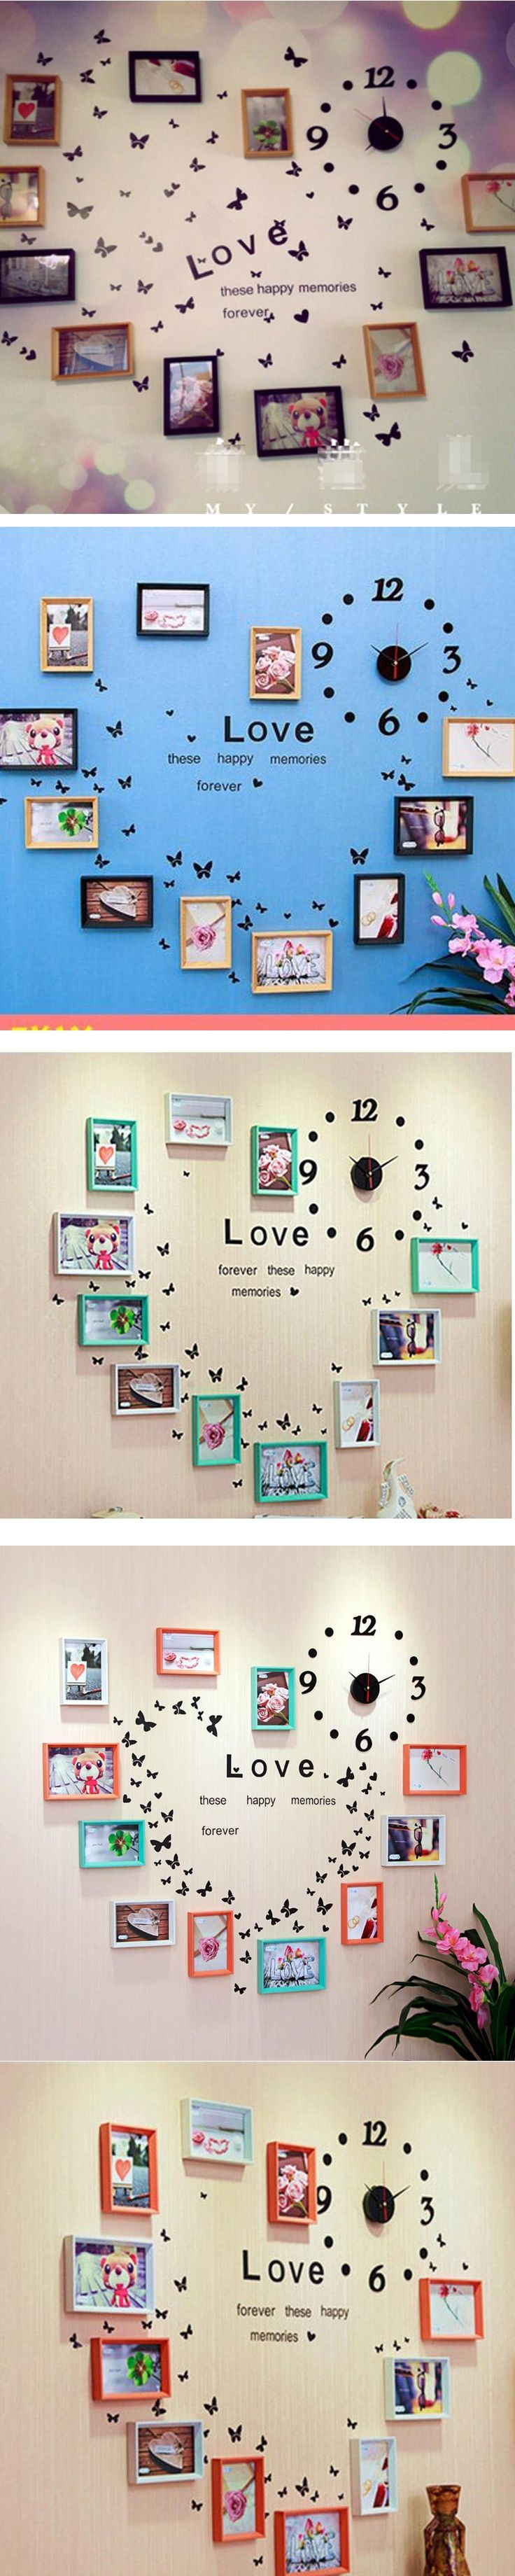 Best 25 picture frame clock ideas on pinterest picture wall 11pcs modern photo frame wall art decor combination wood clock home decoration frame picture frame 140x100cm amipublicfo Gallery